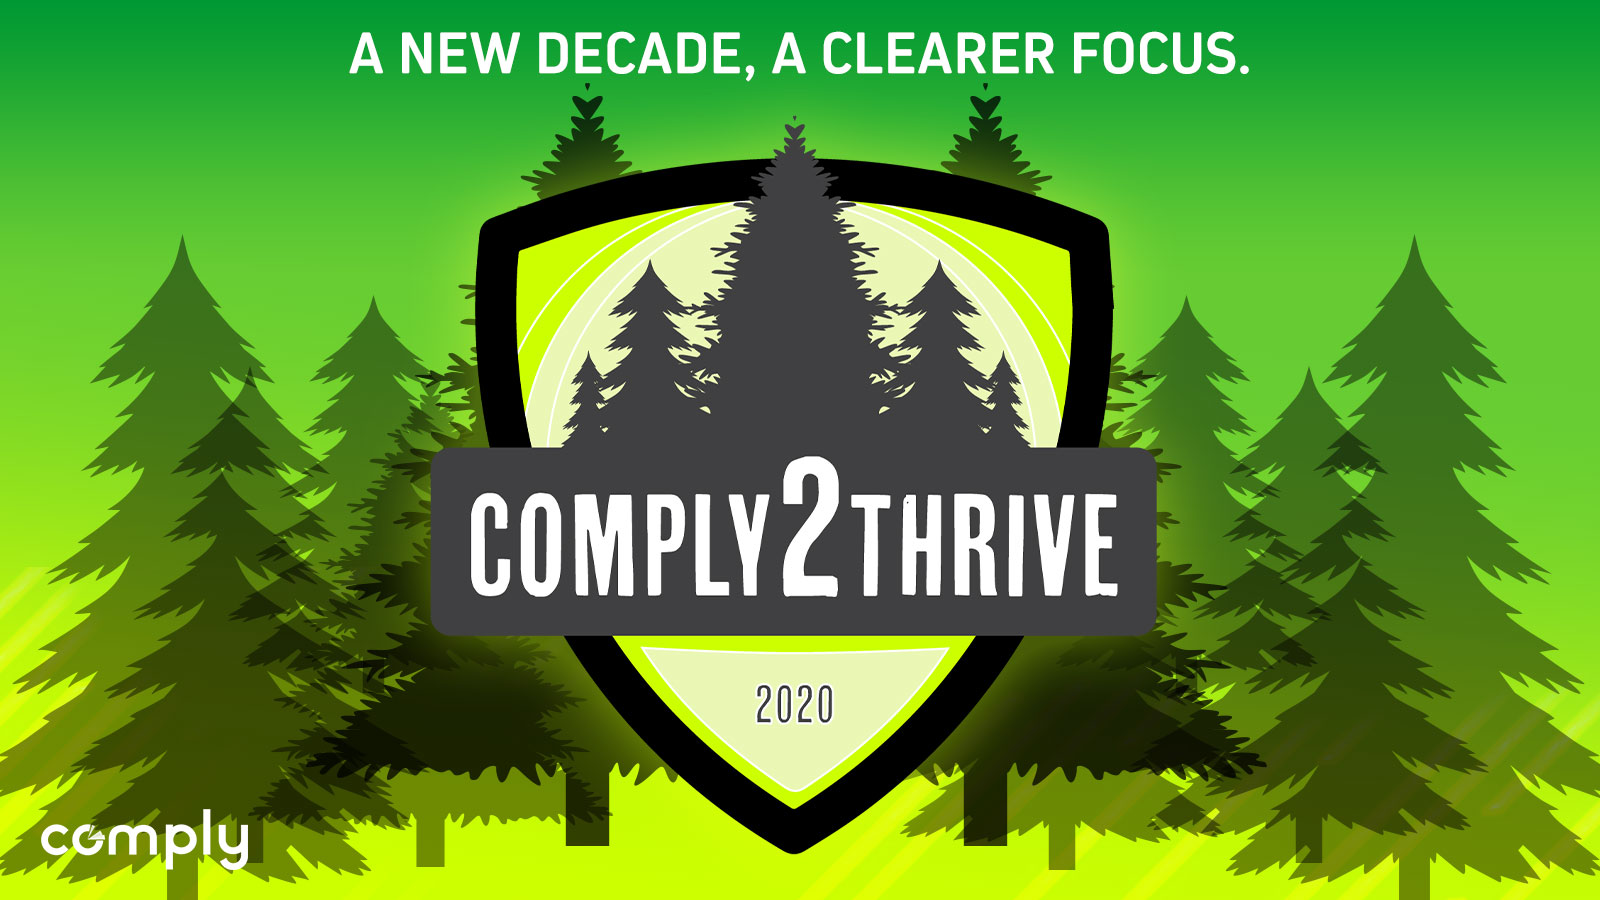 COMPLY2020: Accelerating Growth Through Compliance